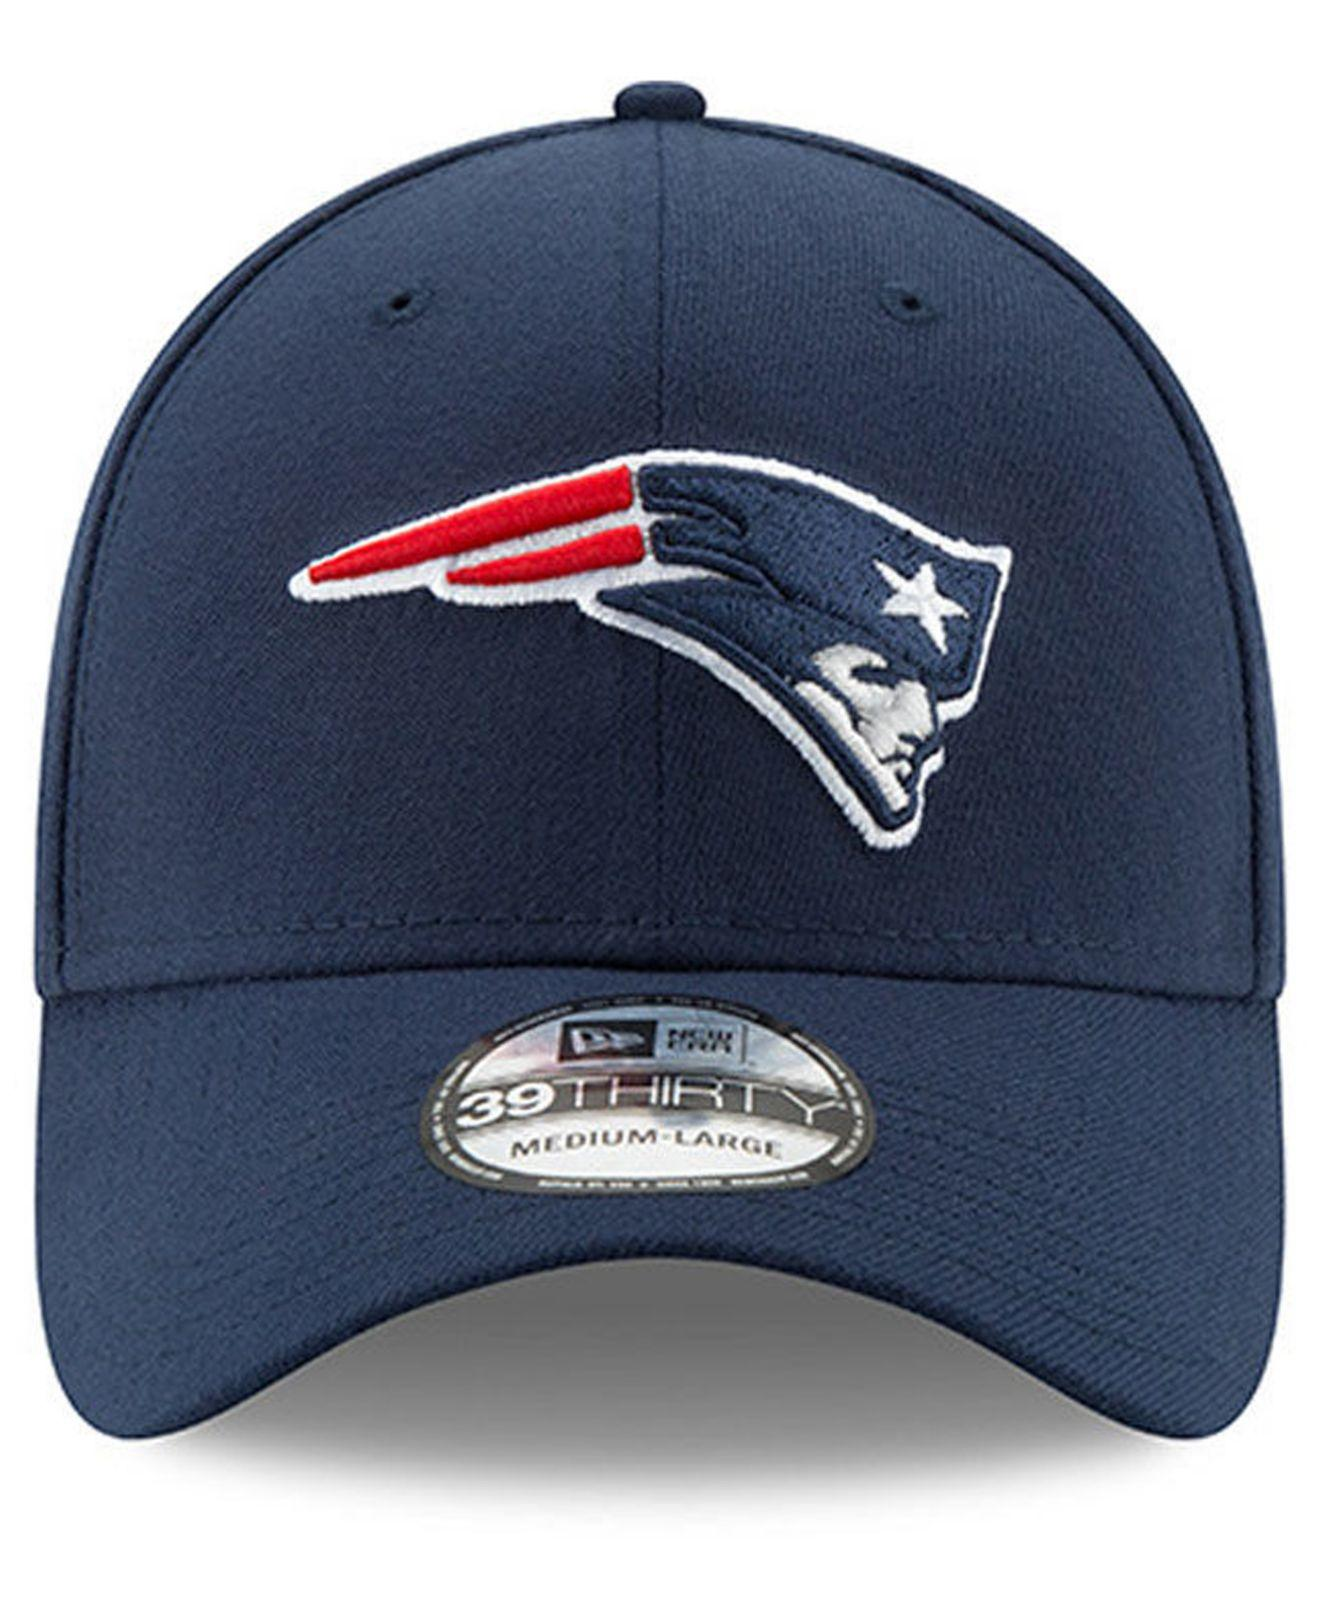 Lyst - KTZ New England Patriots Super Bowl Liii Team Classic Patch 39thirty  Stretch Fitted Cap in Blue for Men e6717a9b5